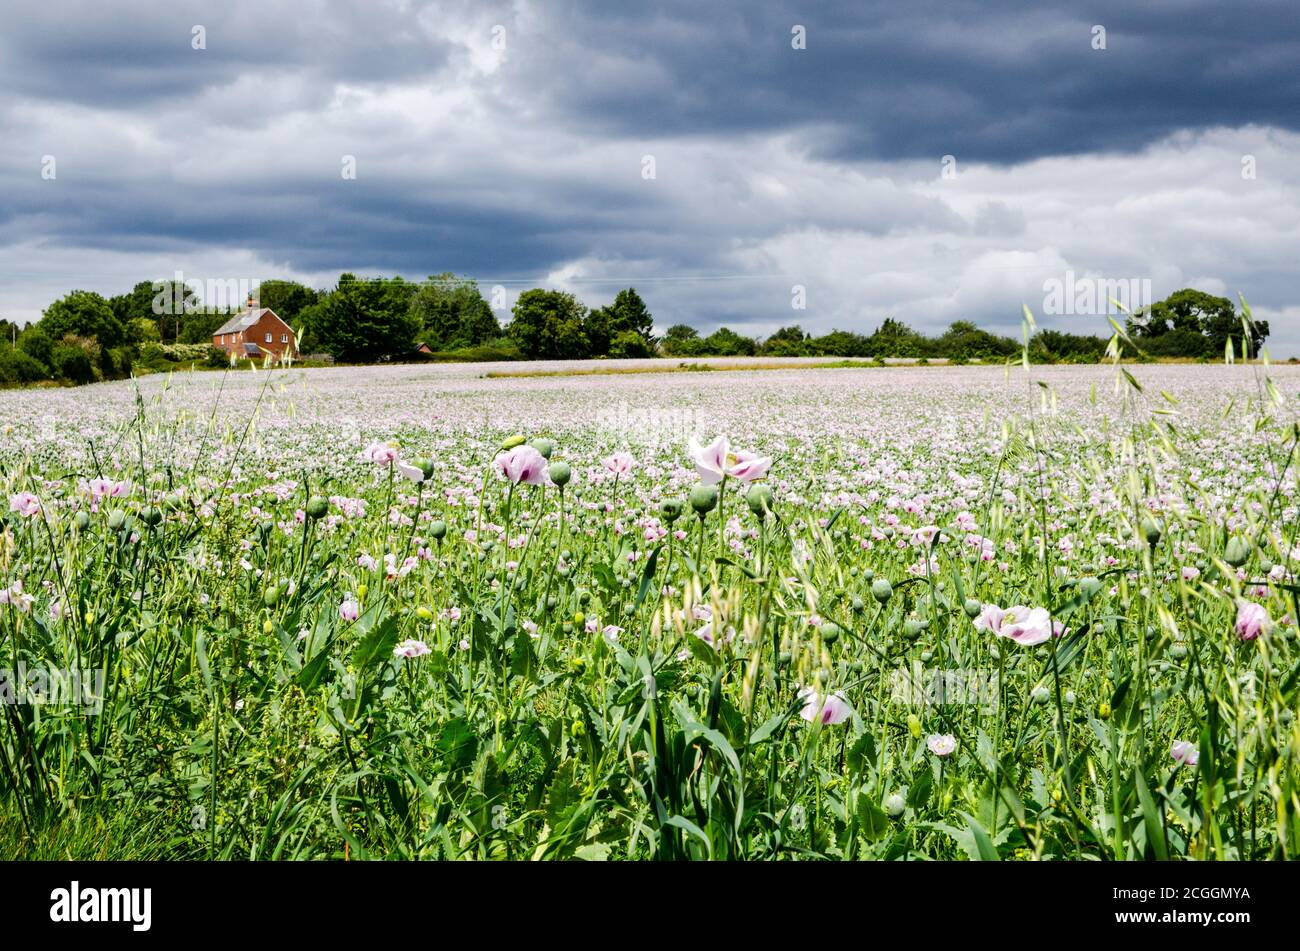 A field of opium poppies flowering on a farm in Basingstoke, Hampshire. The crop is used for the pharmaceutical industry. Stock Photo